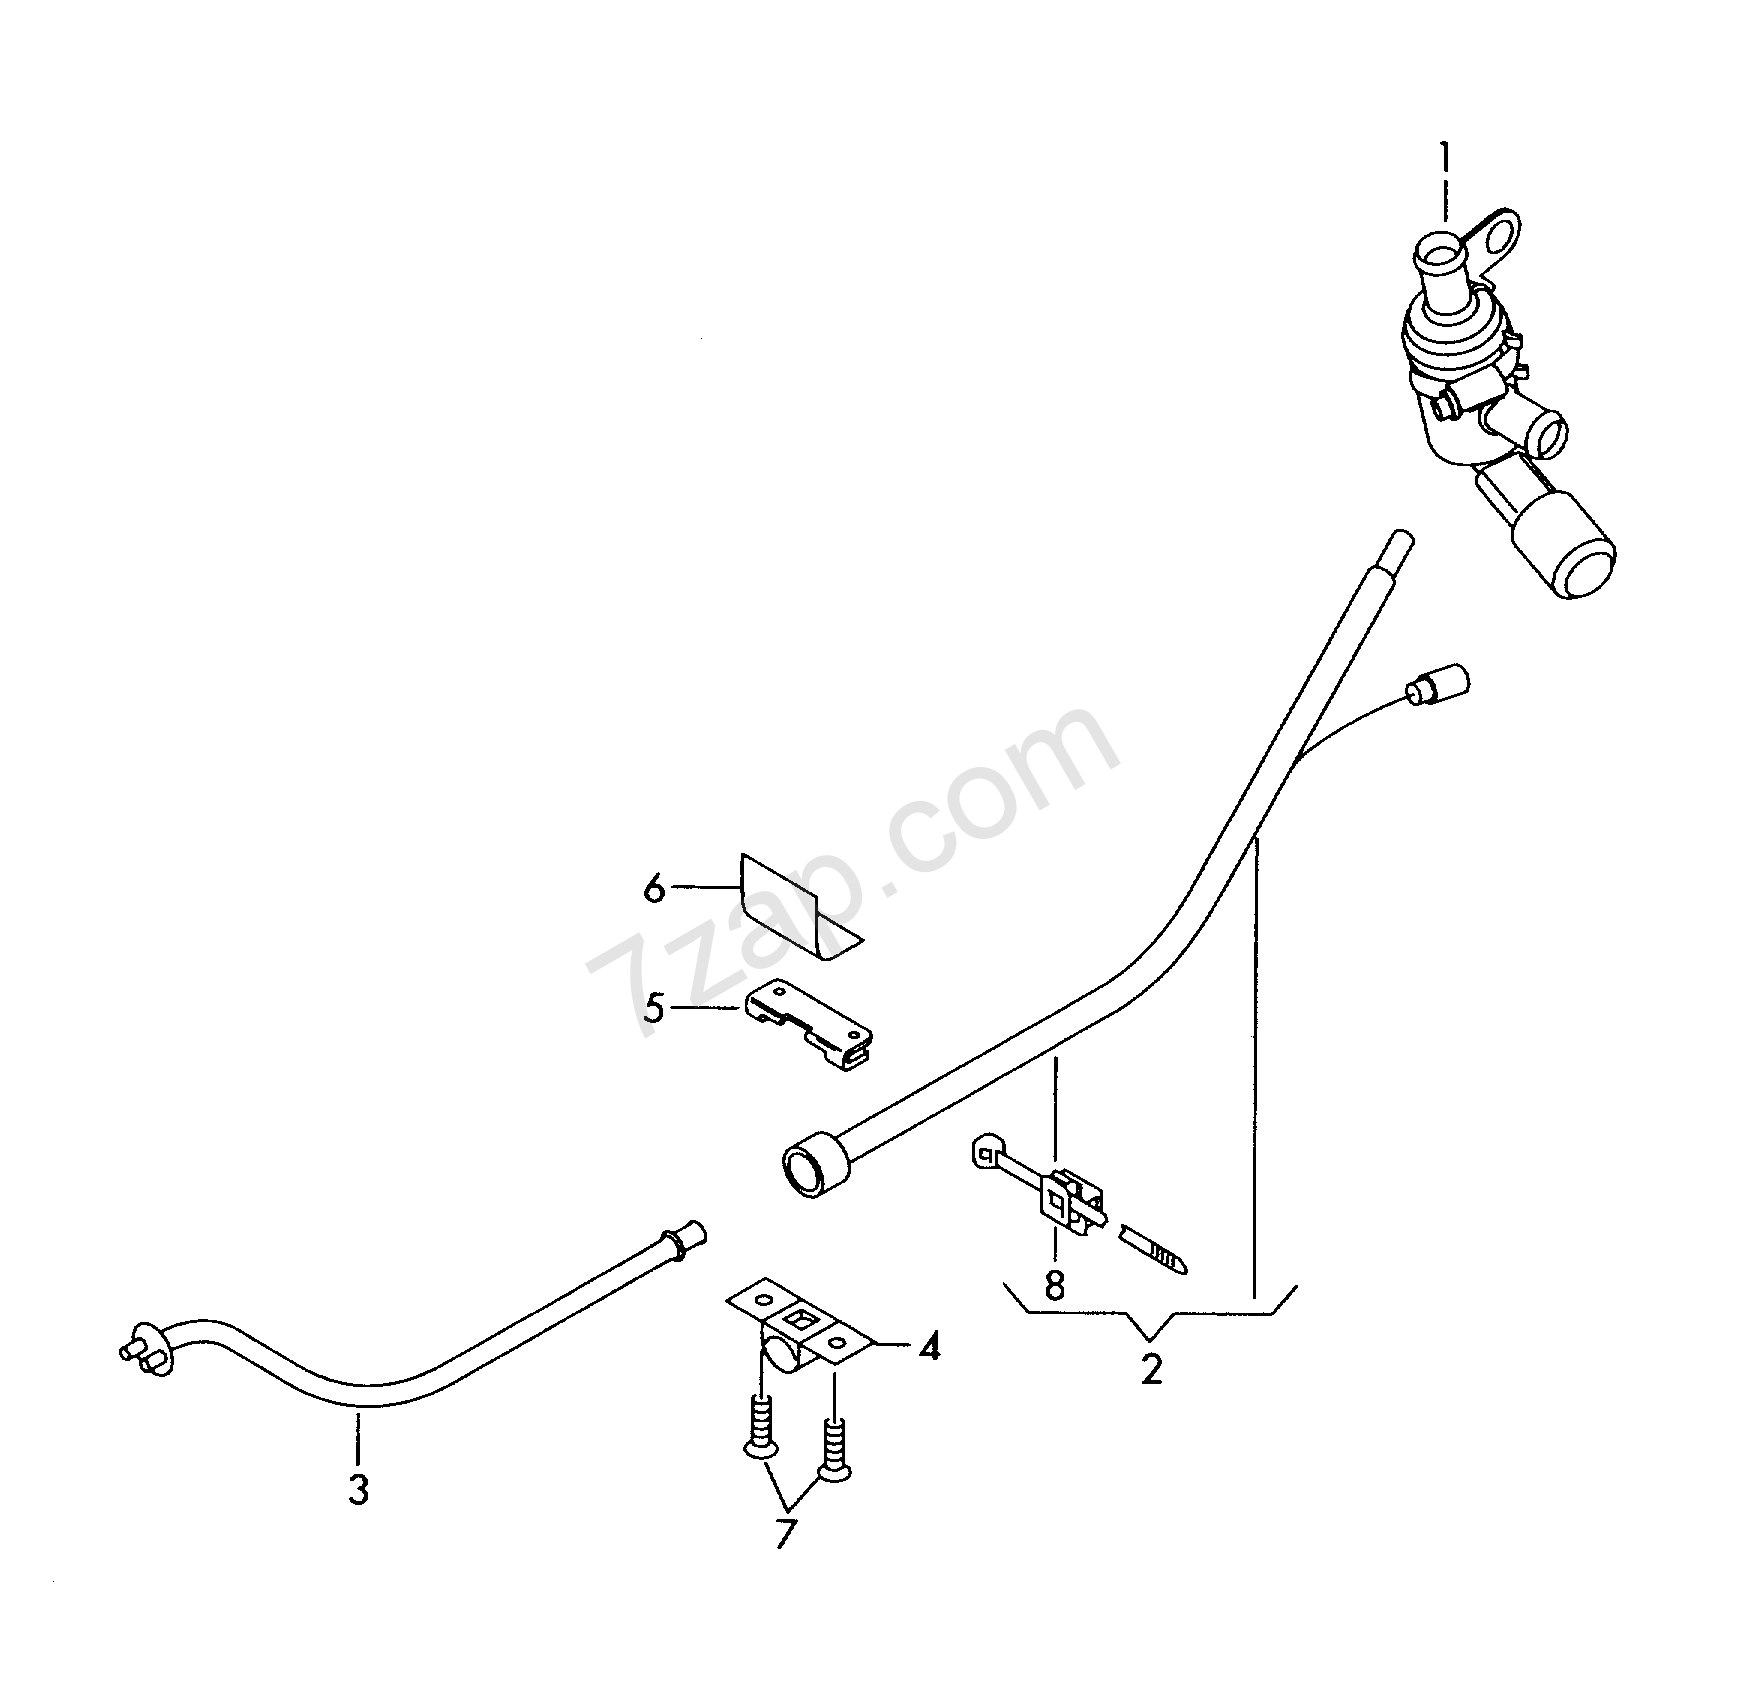 Wiring Harness For Additional Current Supply Octavia Oct